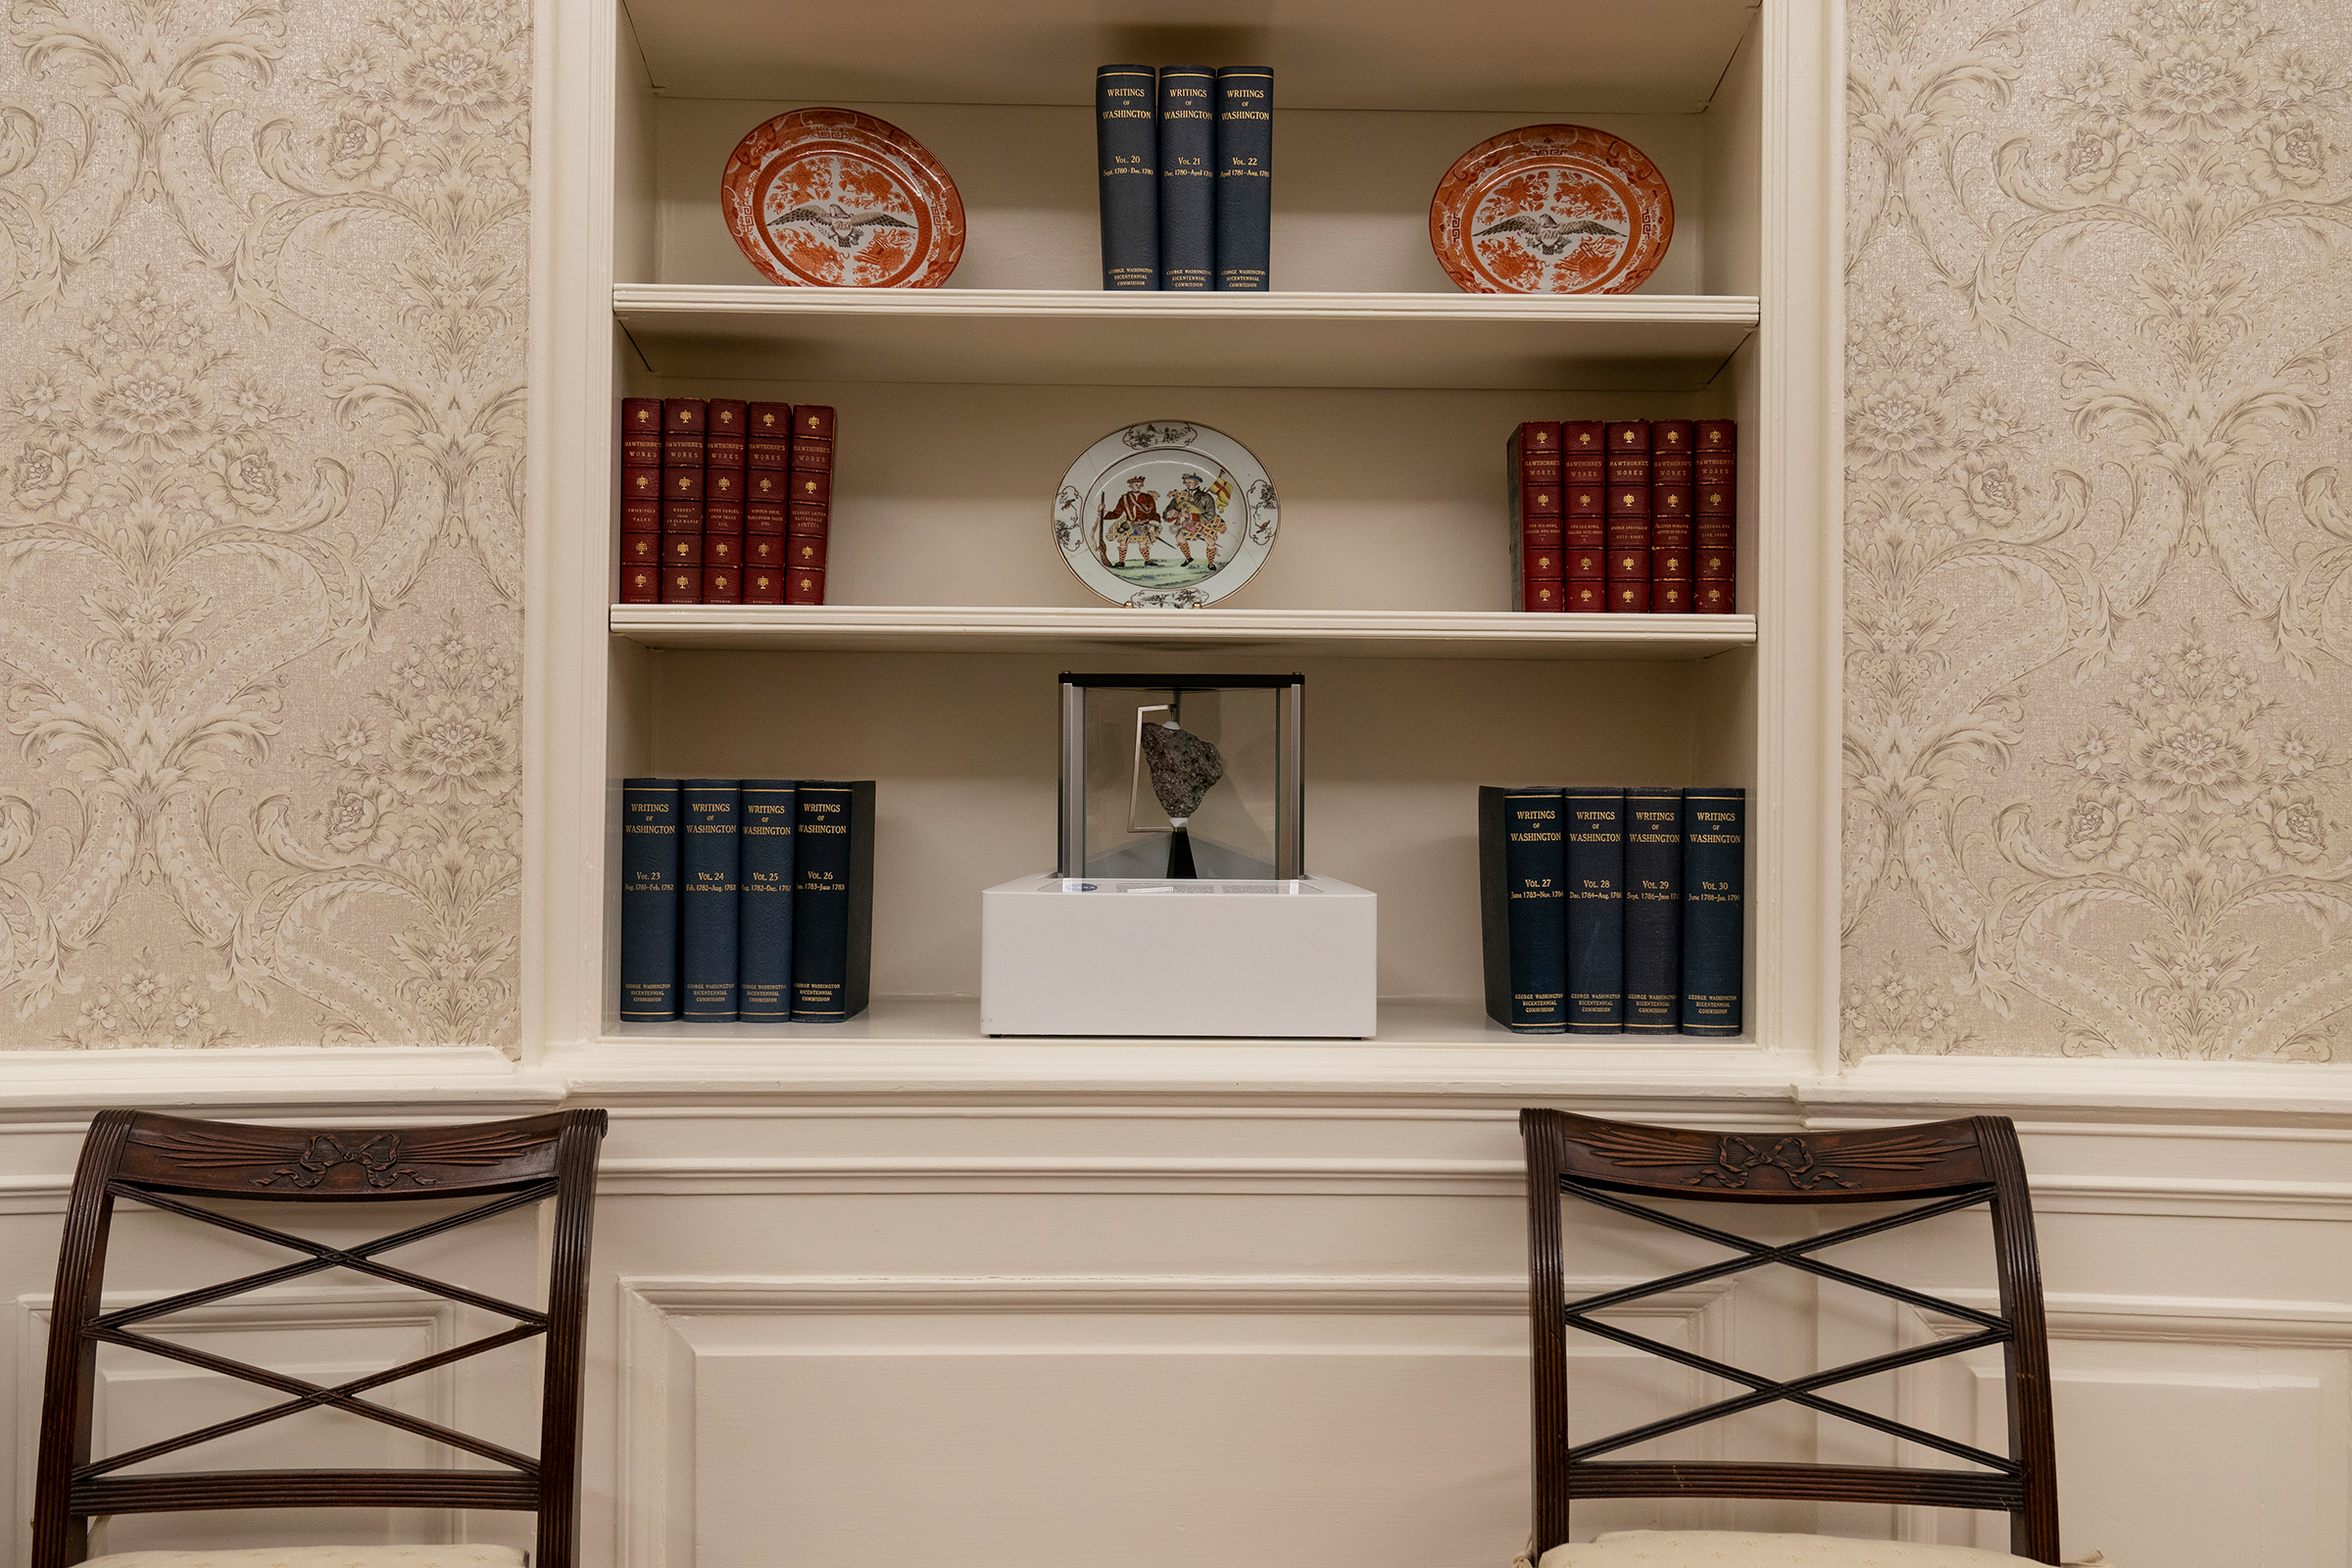 President Joe Biden's redecoration of the Oval Office of the White House includes a rock from the moon, shown here on the bottom shelf on Jan. 20, 2021.